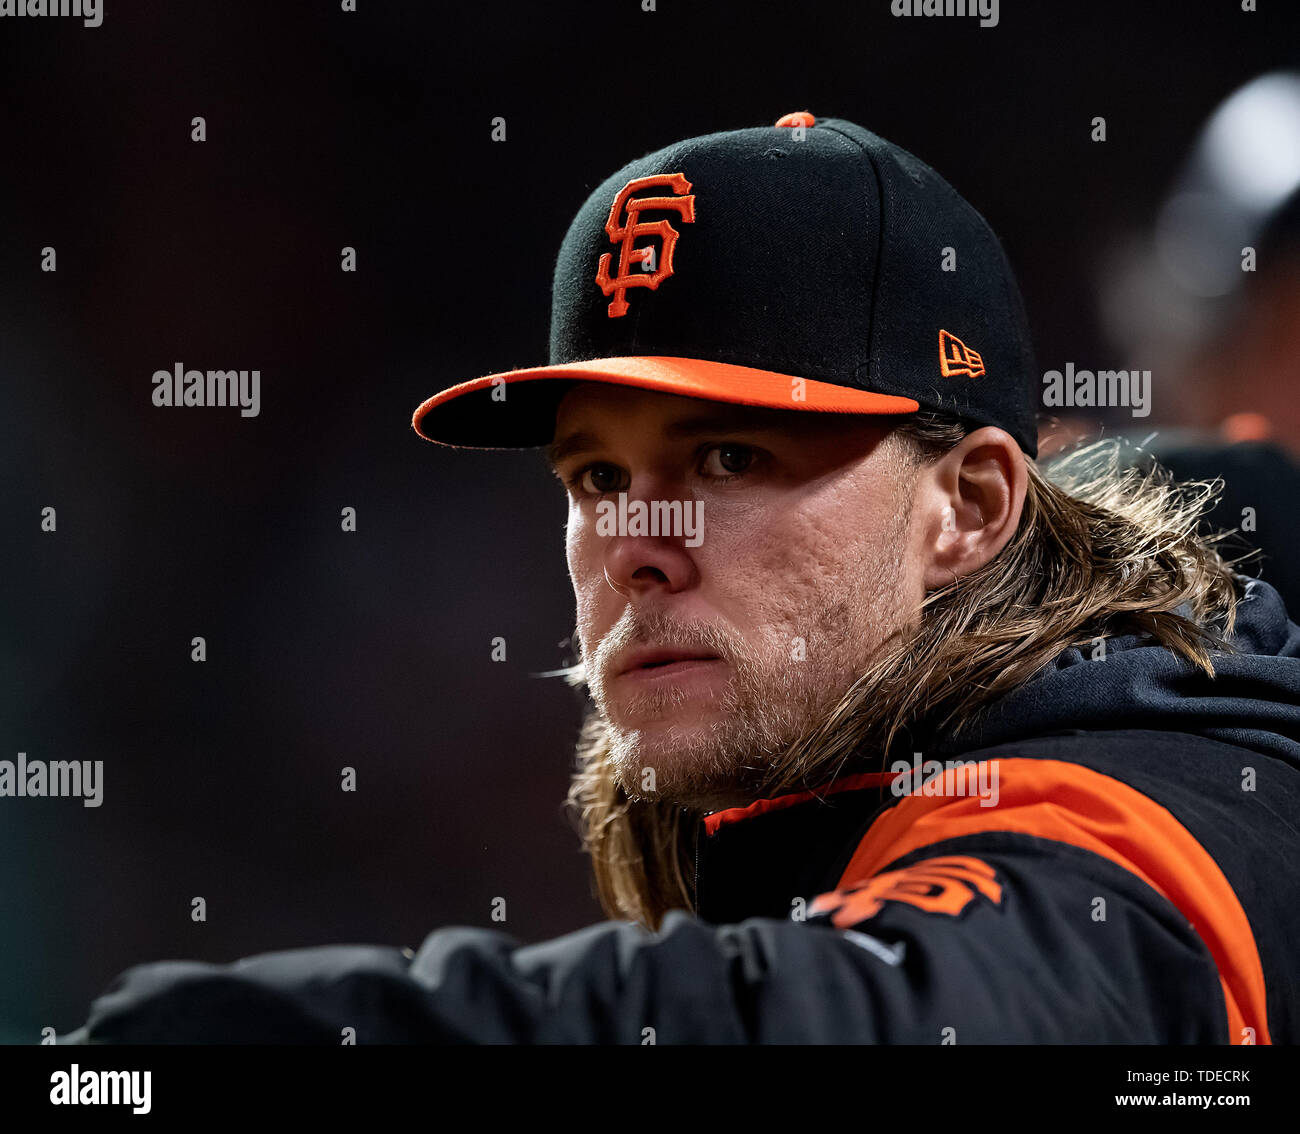 San Francisco, California, USA. 14th June, 2019. San Francisco Giants starting pitcher Shaun Anderson (64) watches the game from the dugout, during a MLB game between the Milwaukee Brewers and the San Francisco Giants at Oracle Park in San Francisco, California. Valerie Shoaps/CSM/Alamy Live News - Stock Image